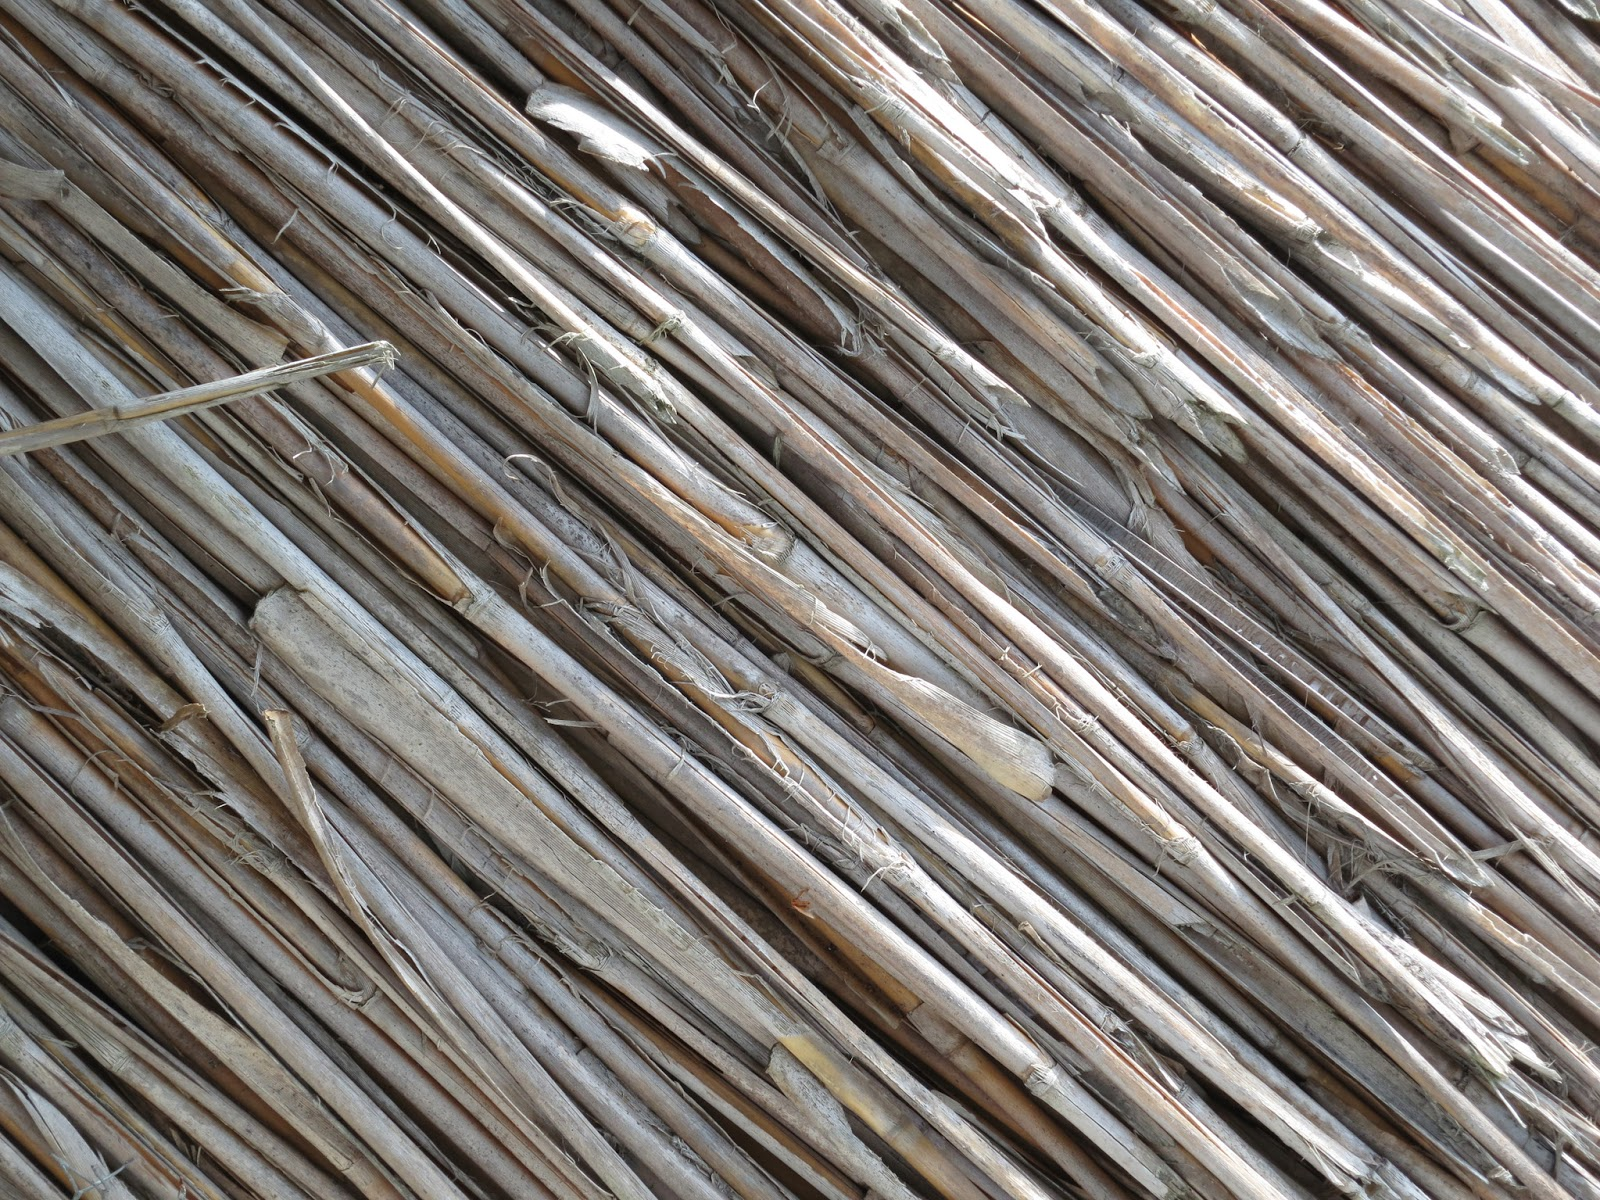 Close up of the reeds in a thatched roof.